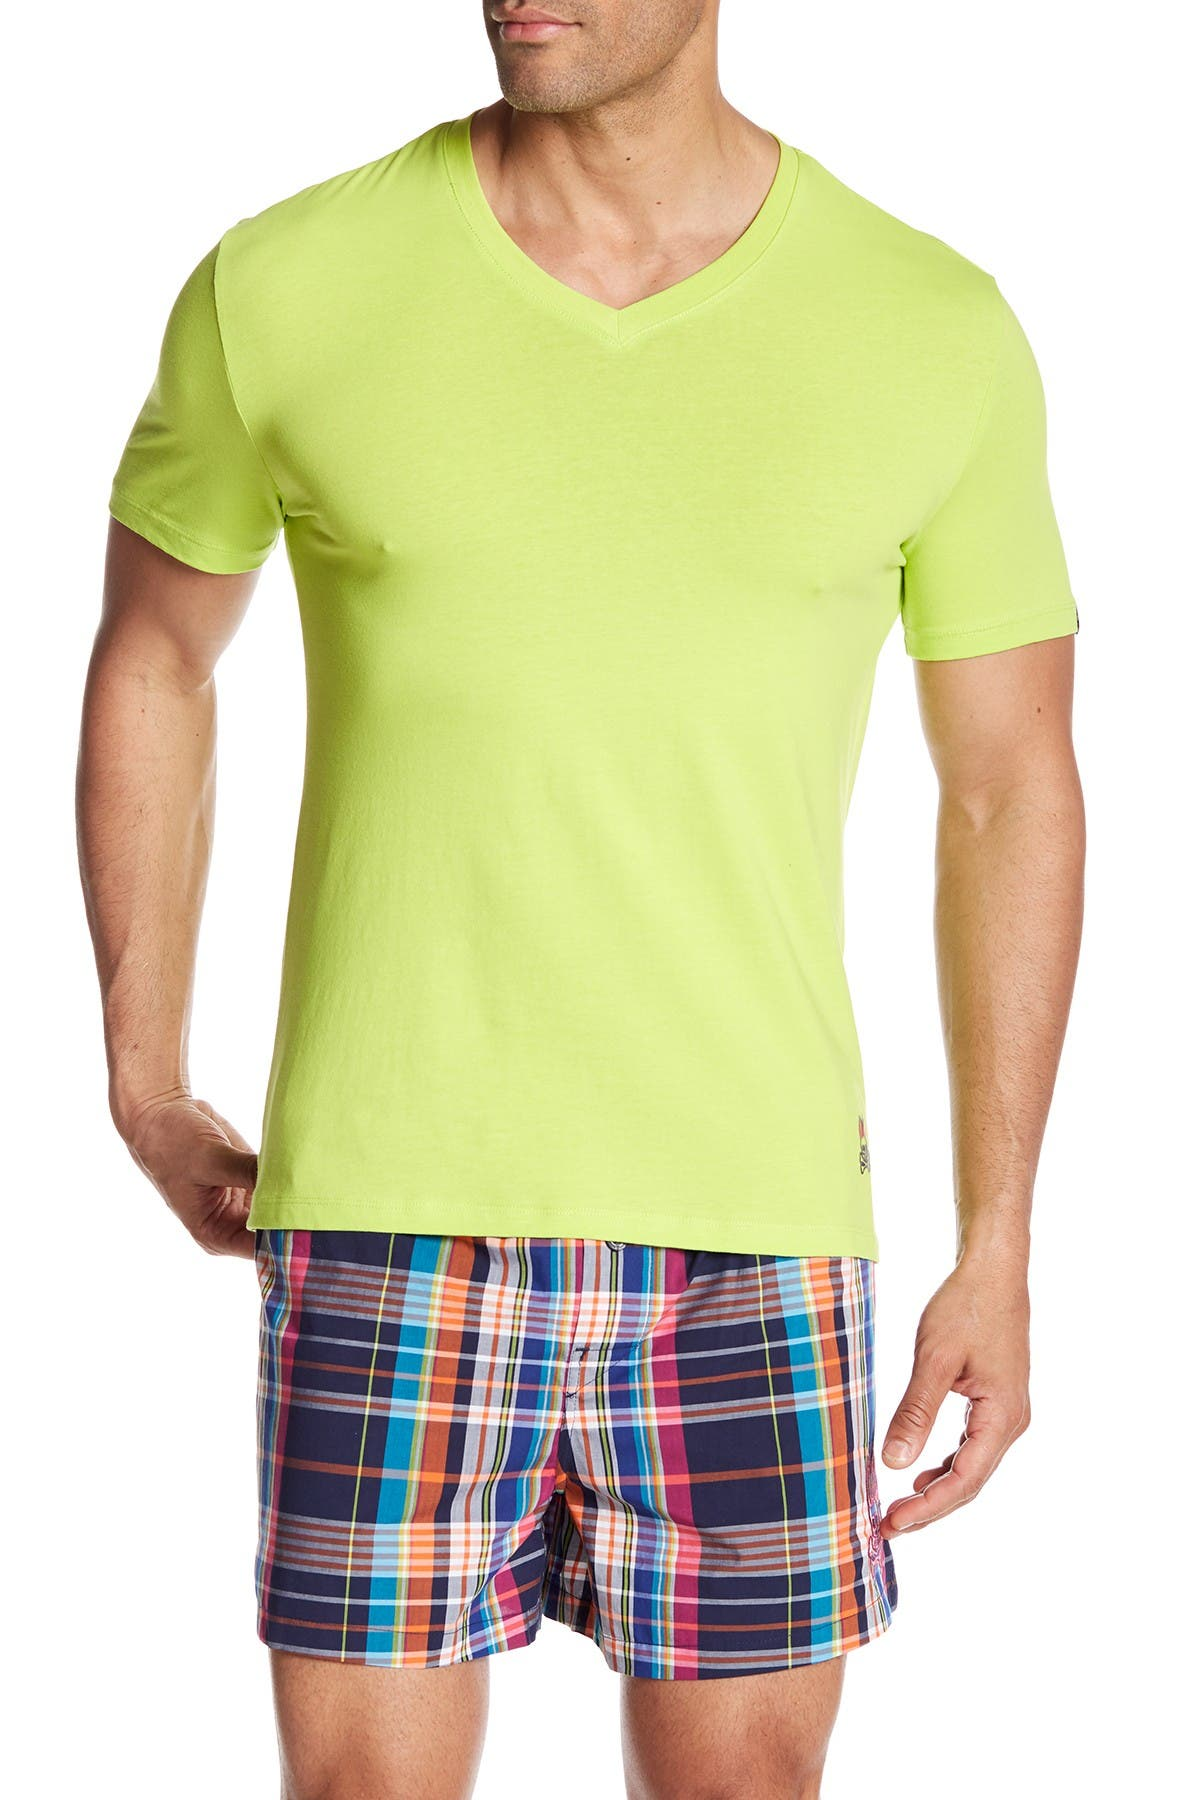 Image of Psycho Bunny Brights V-Neck Lounge T-Shirt